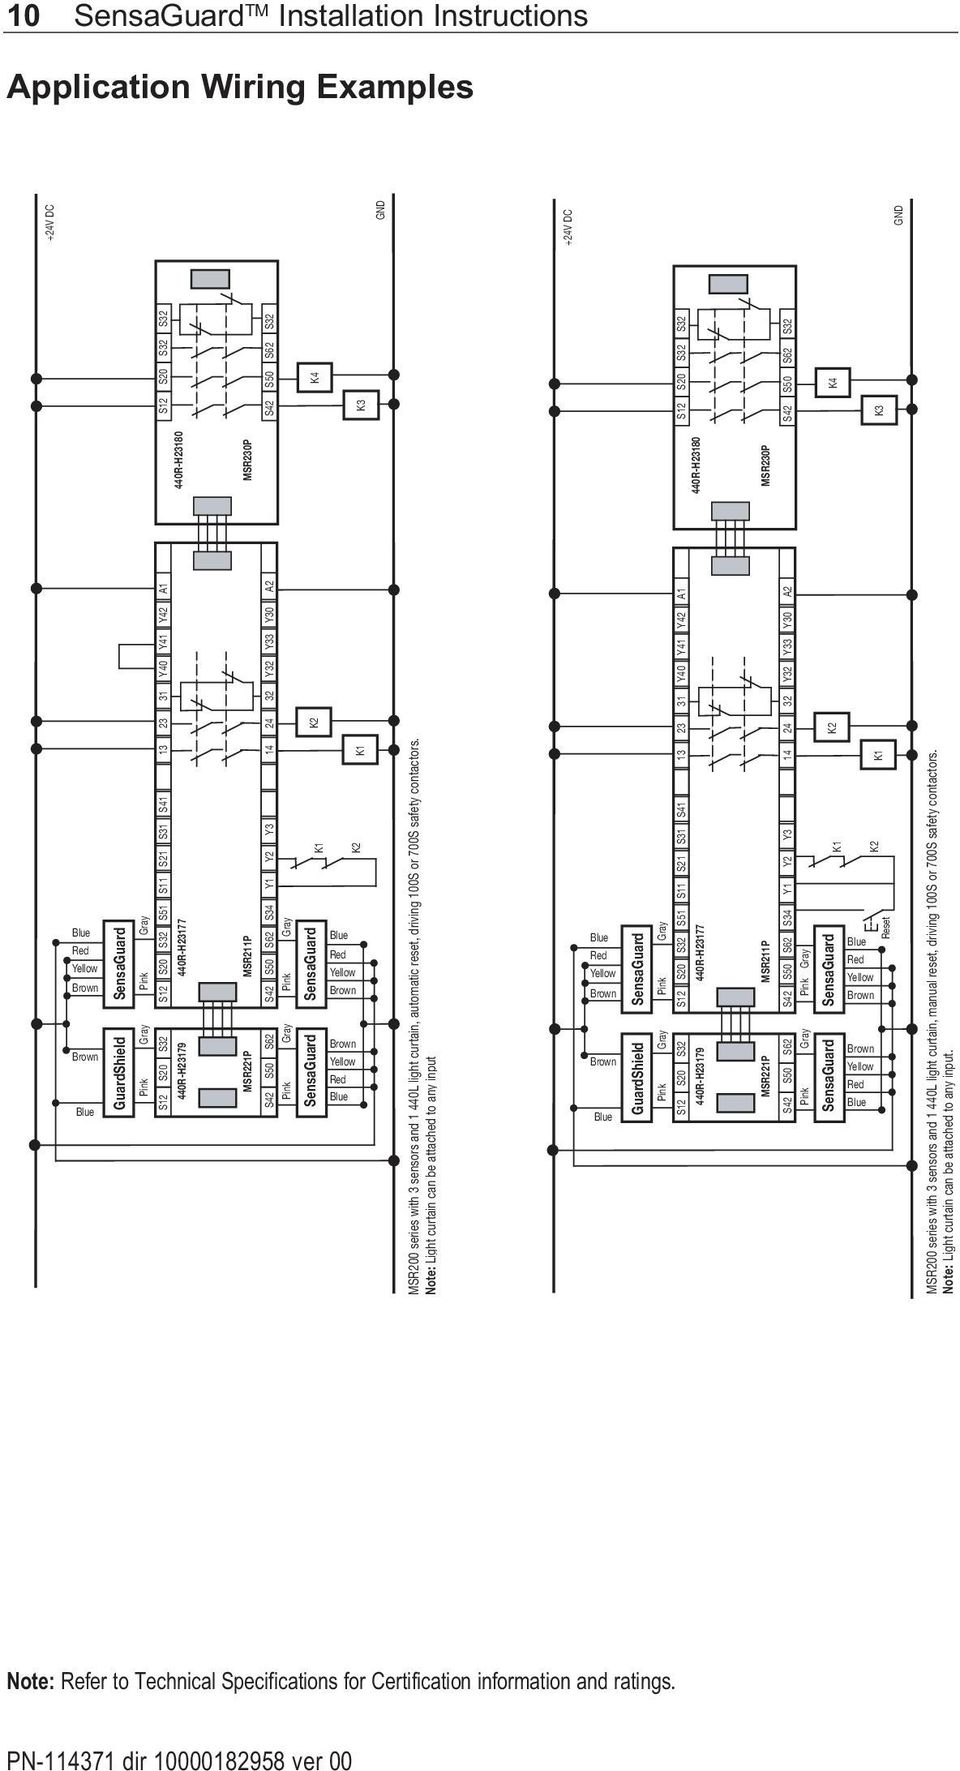 Honeywell Fta Wiring 23y Diagrams Sensaguard Tm Rectangular Flat Pack Installation Instructions Pdf 700s Safety Contactors